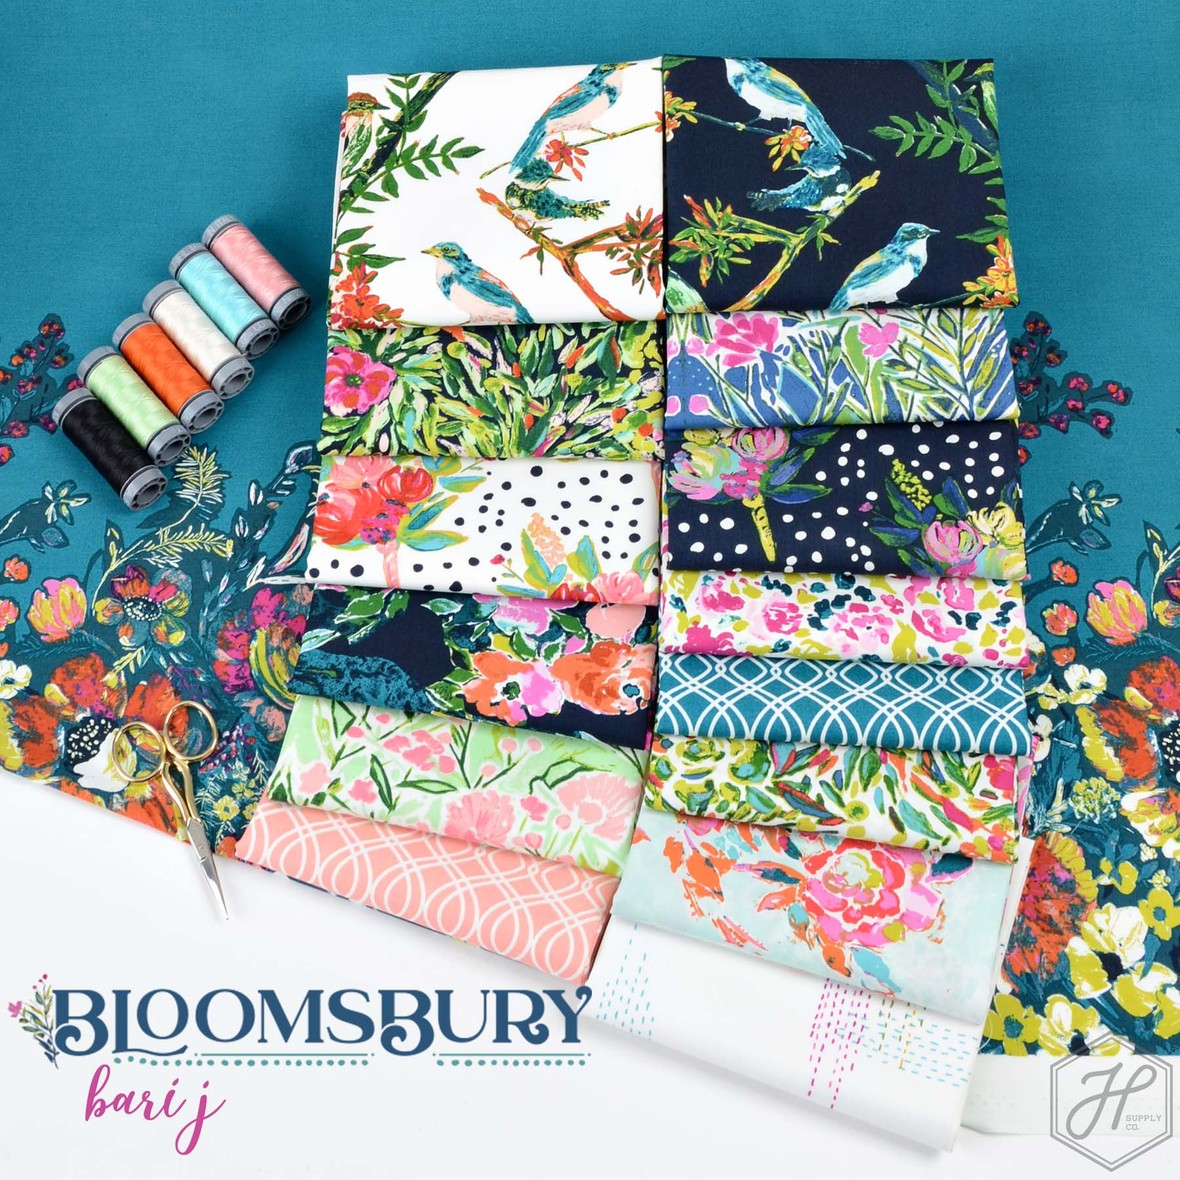 Bloomsbury Fabric Bari J for Art Gallery at Hawthorne Supply Co